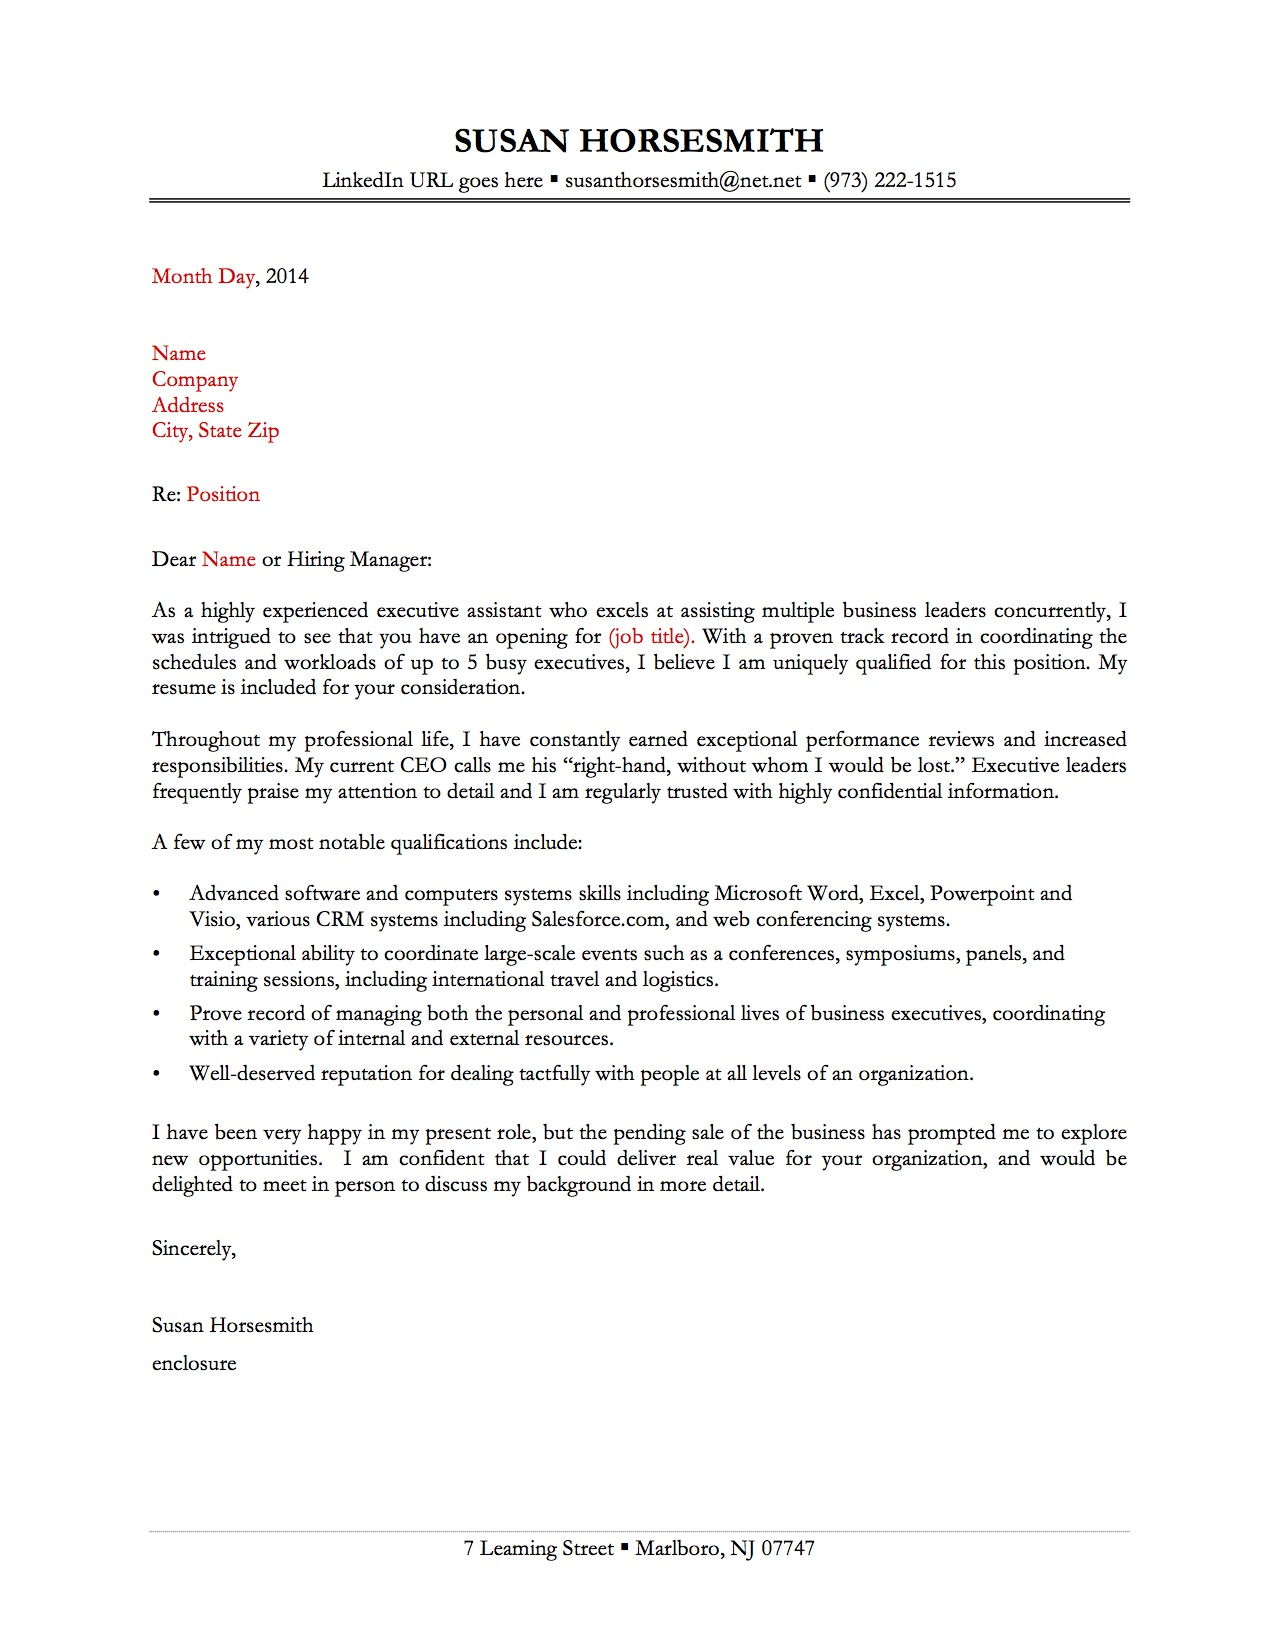 sample cover letter 1 - Fantastic Cover Letter Examples